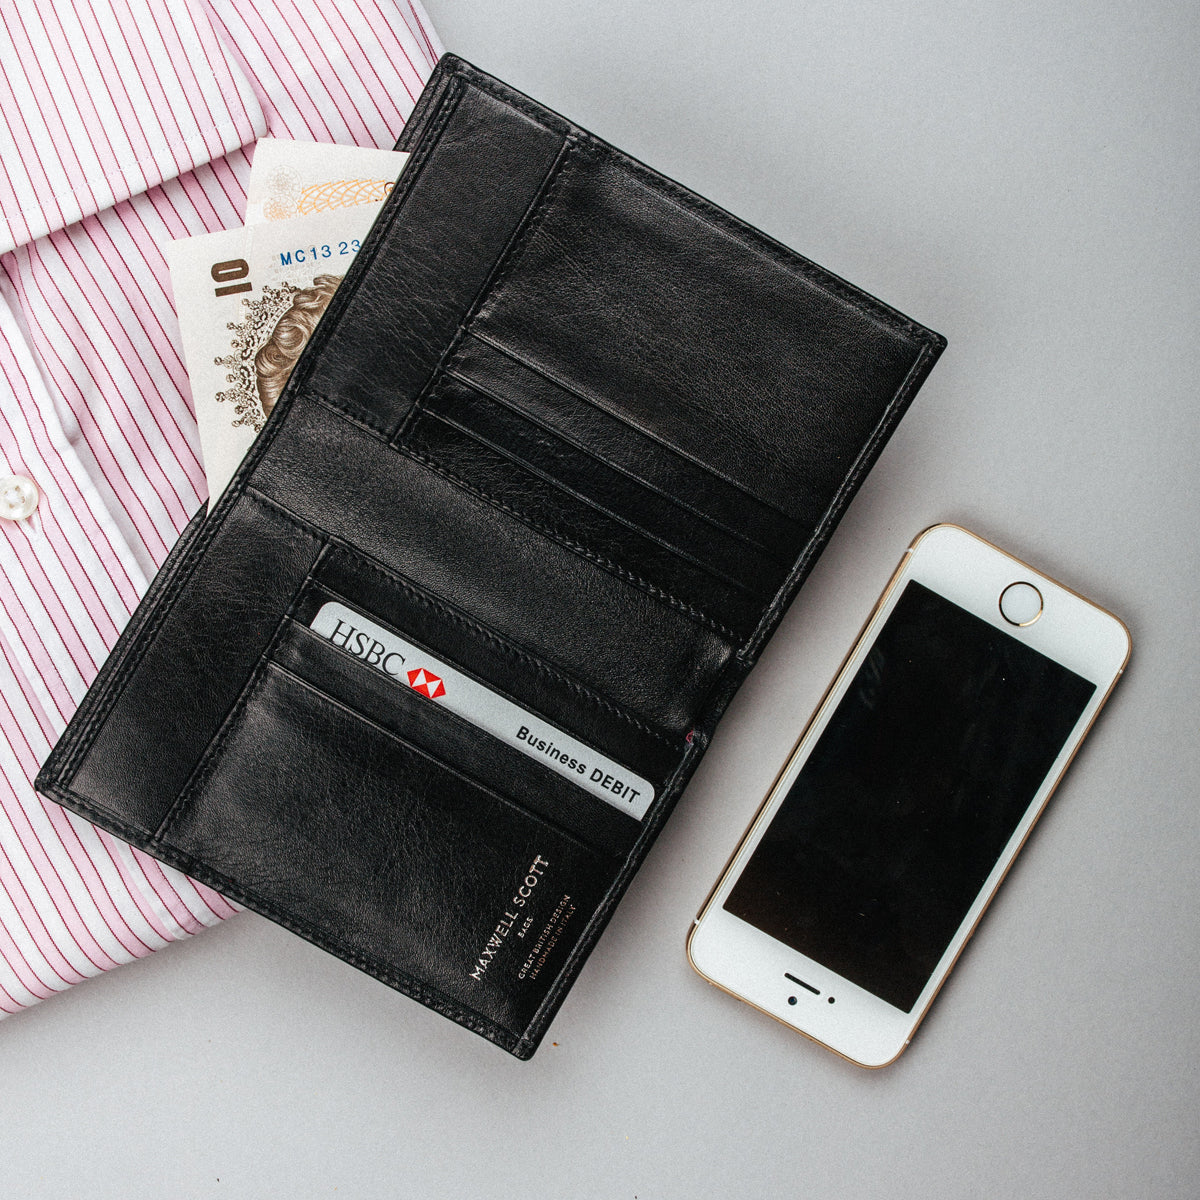 Image 7 of the Black Leather Billfold Card Wallet